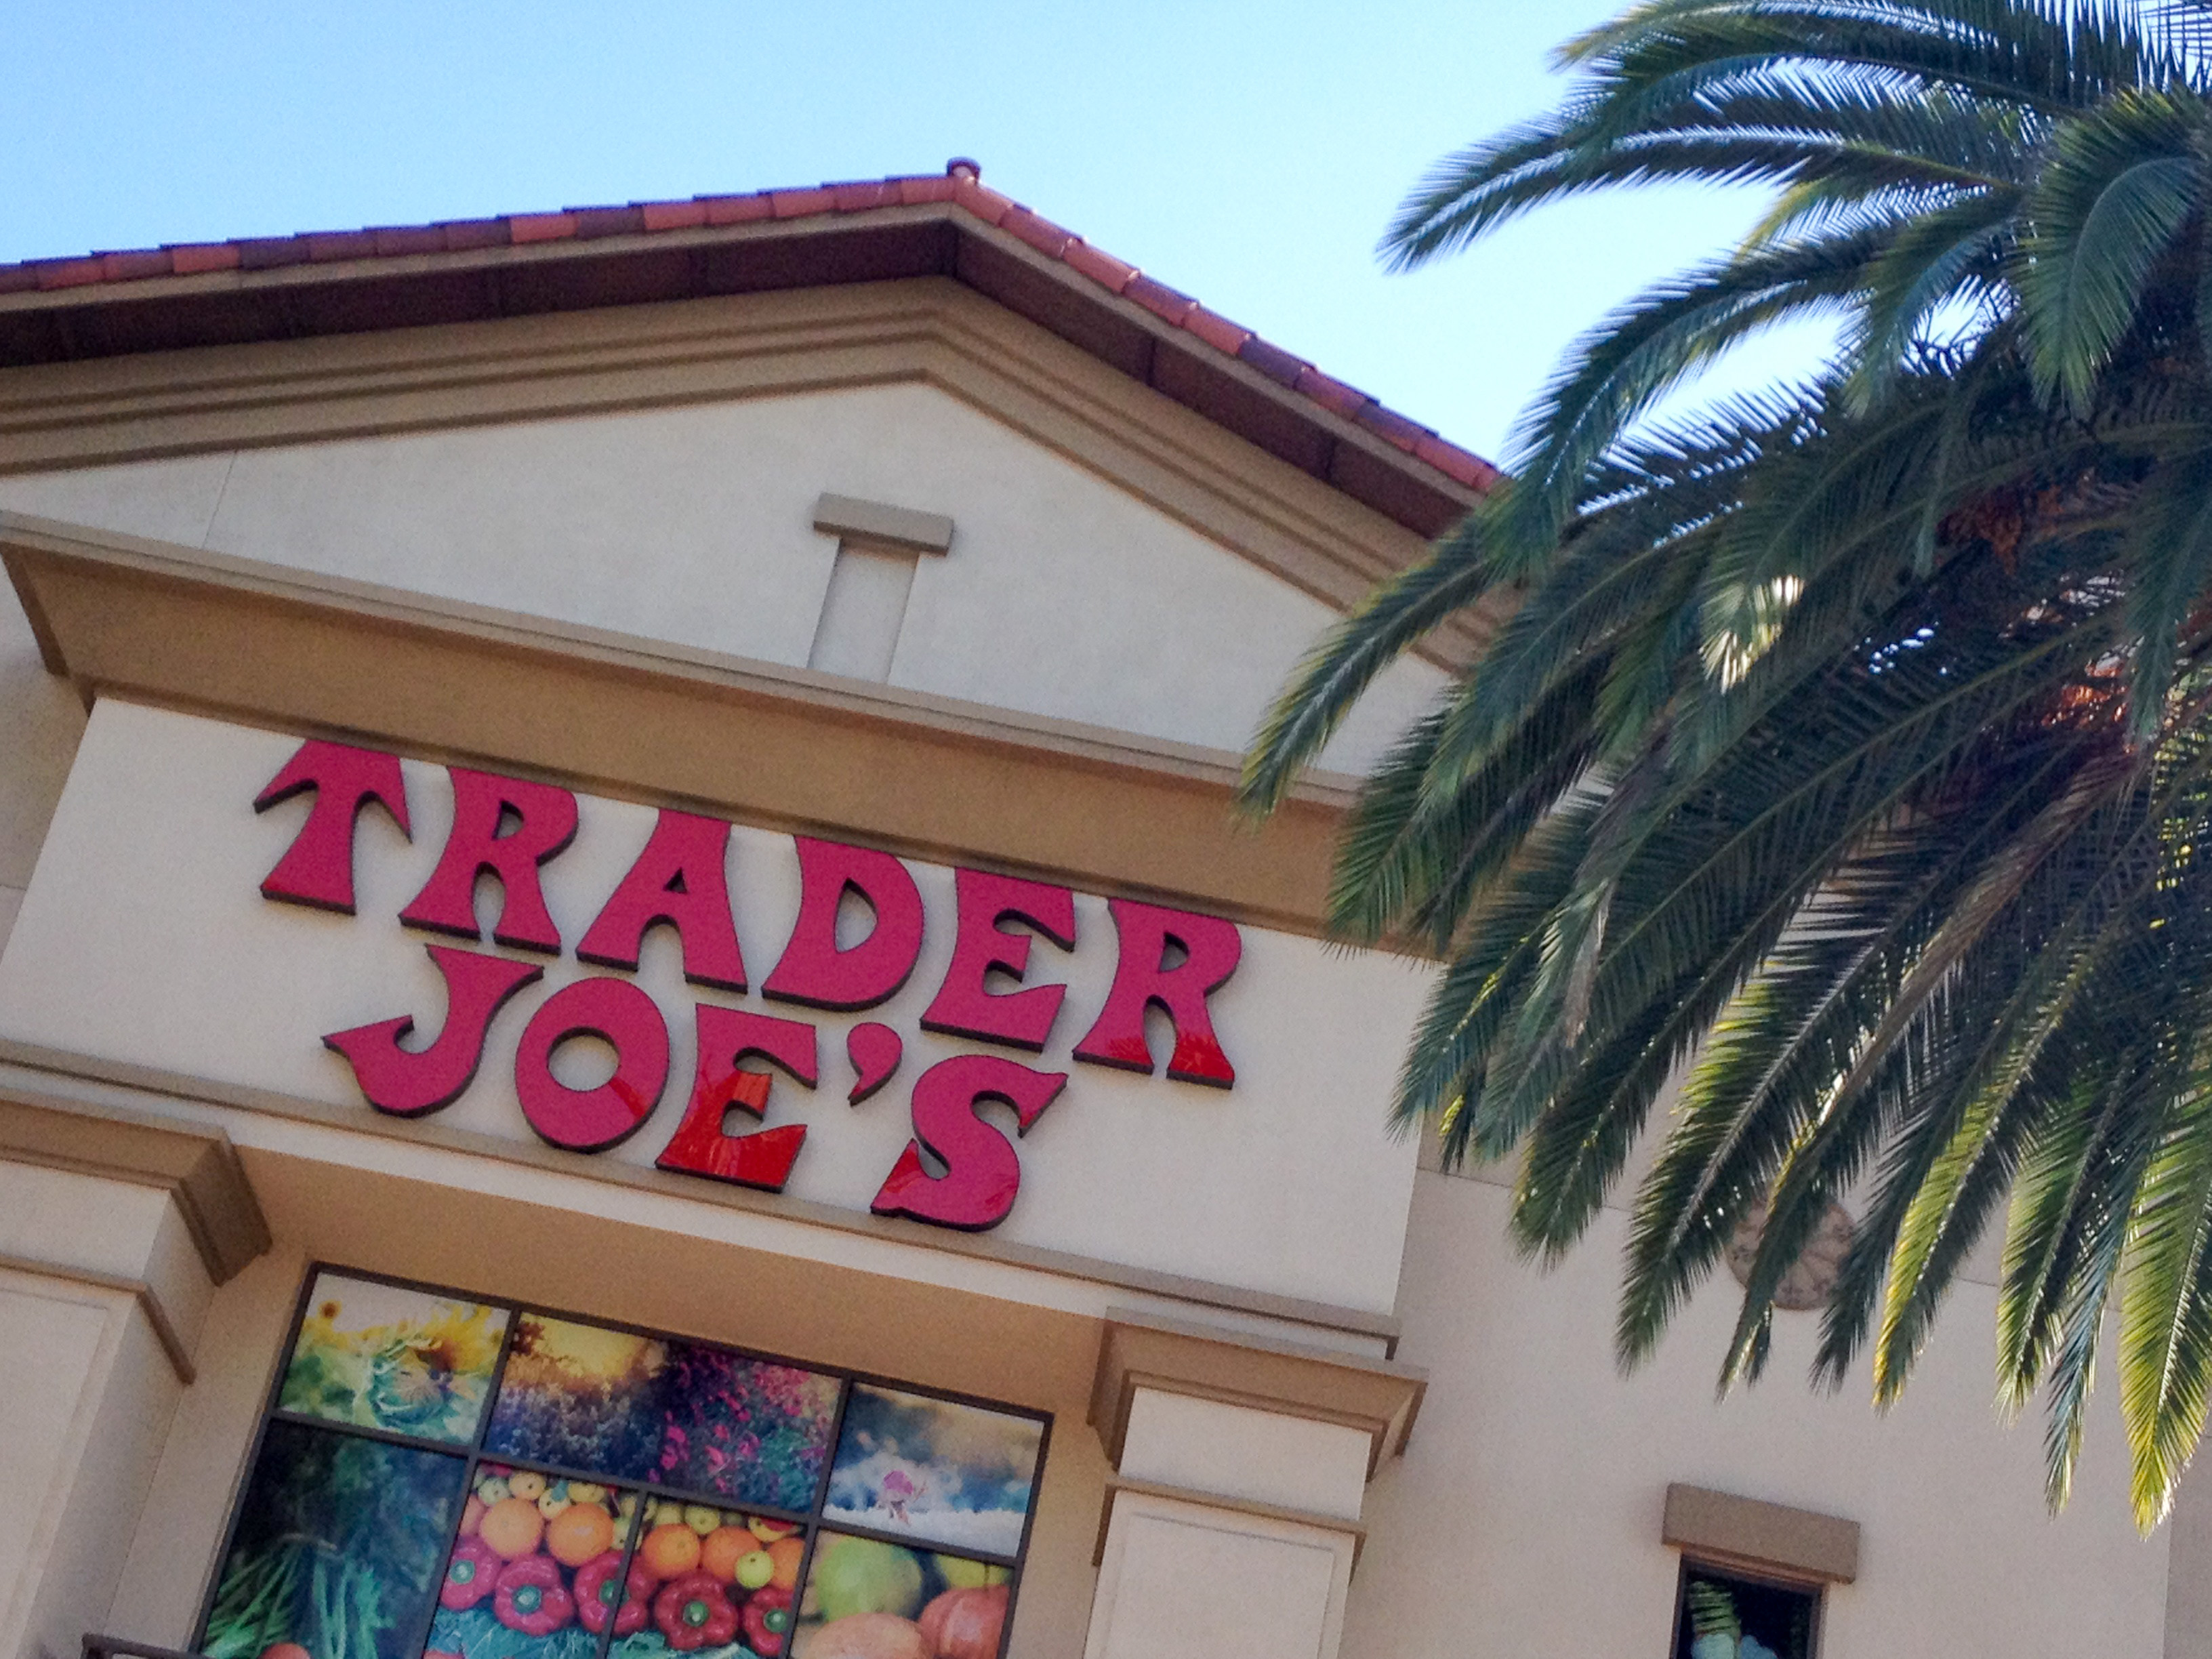 Trader Joe's recalled their hummus, so you might want to make sure you don't have any left